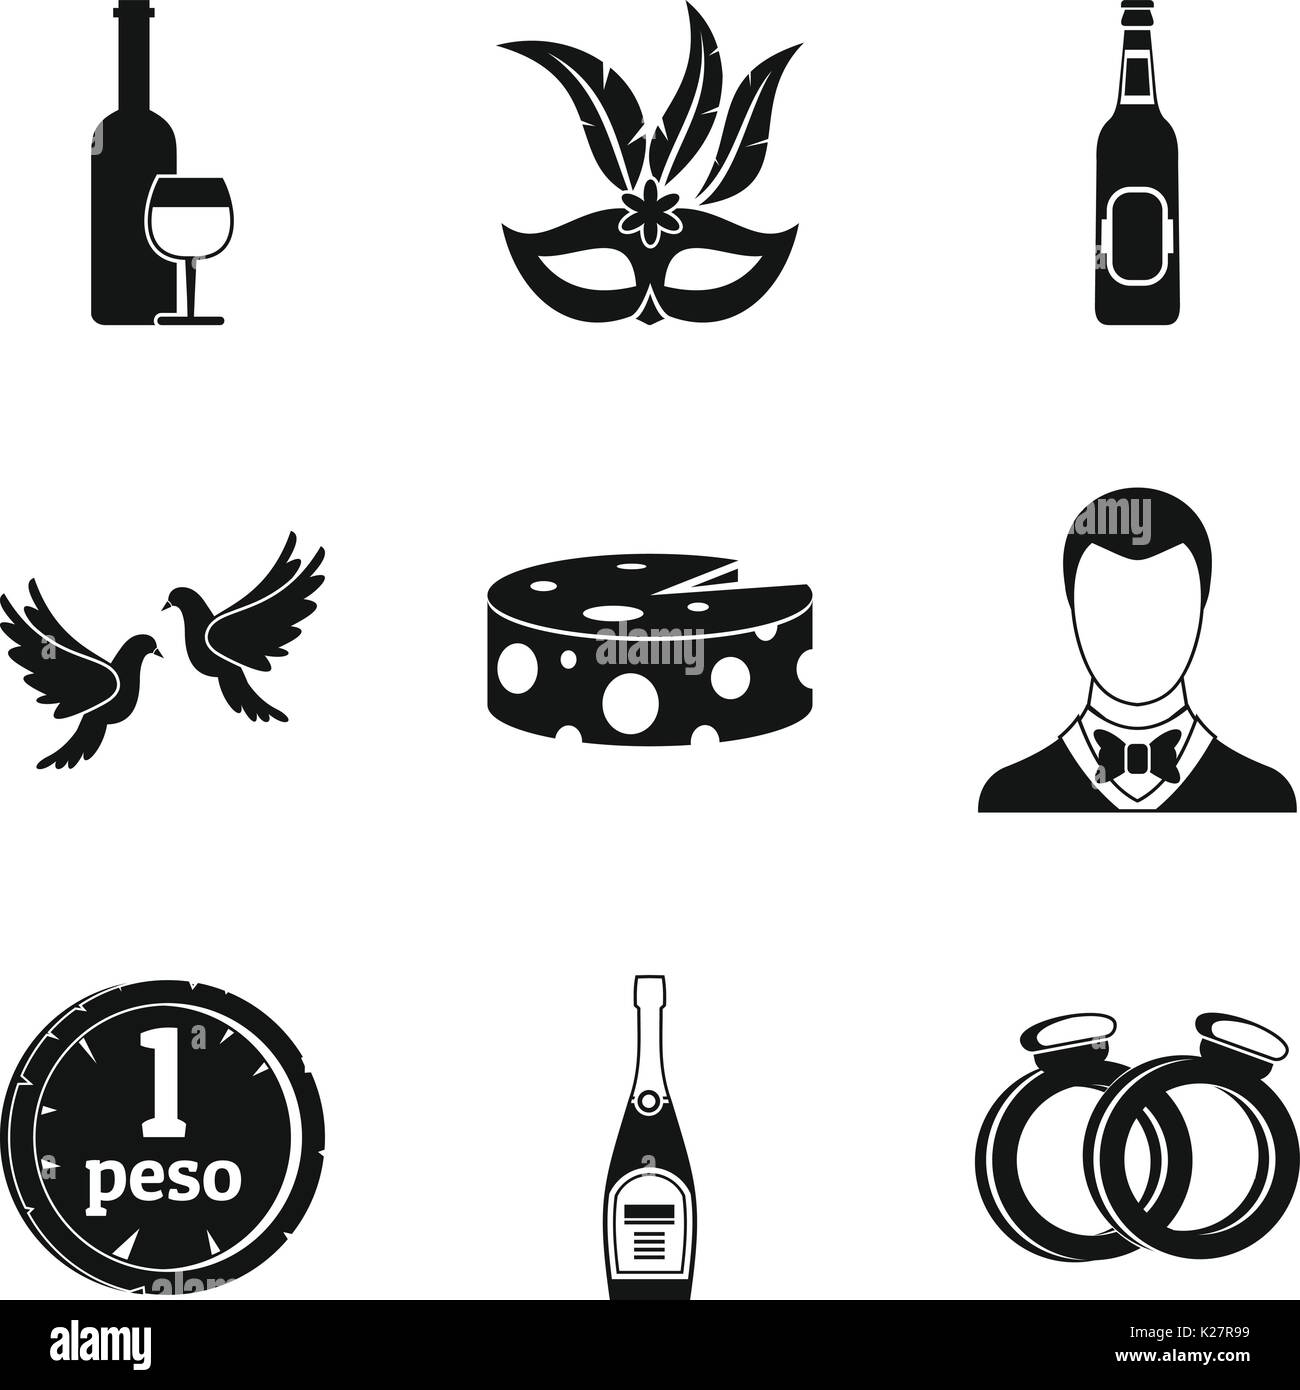 Fizzy drink icons set, simple style - Stock Image